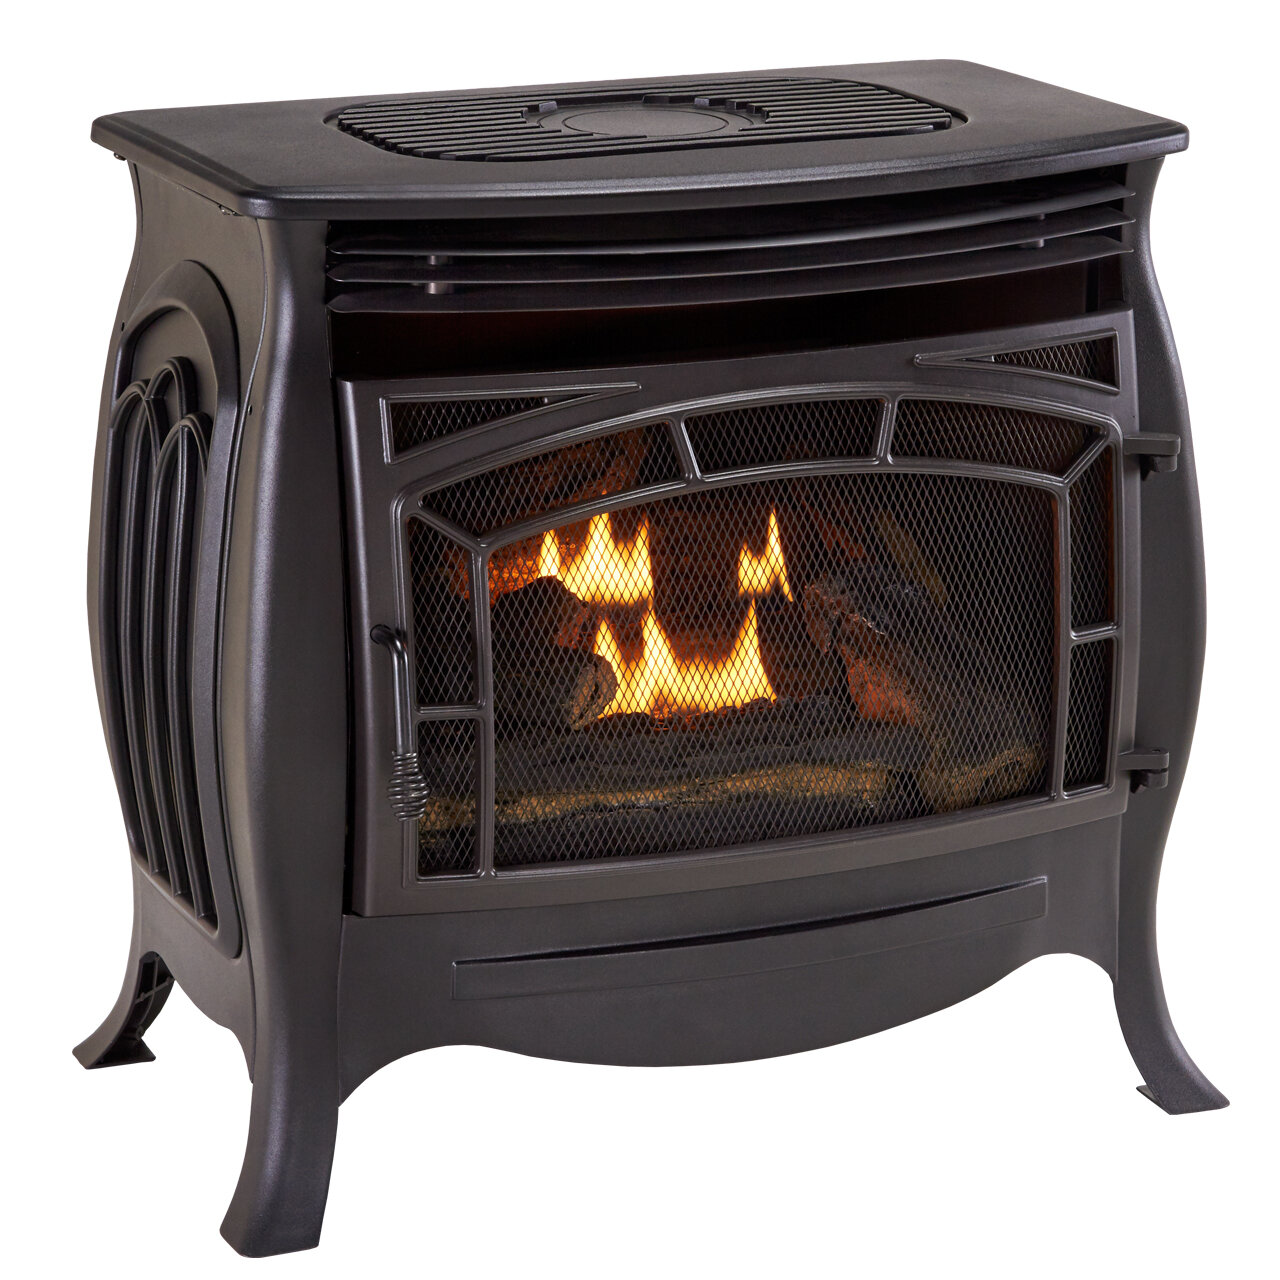 Duluth forge vent free natural gas propane stove wayfair